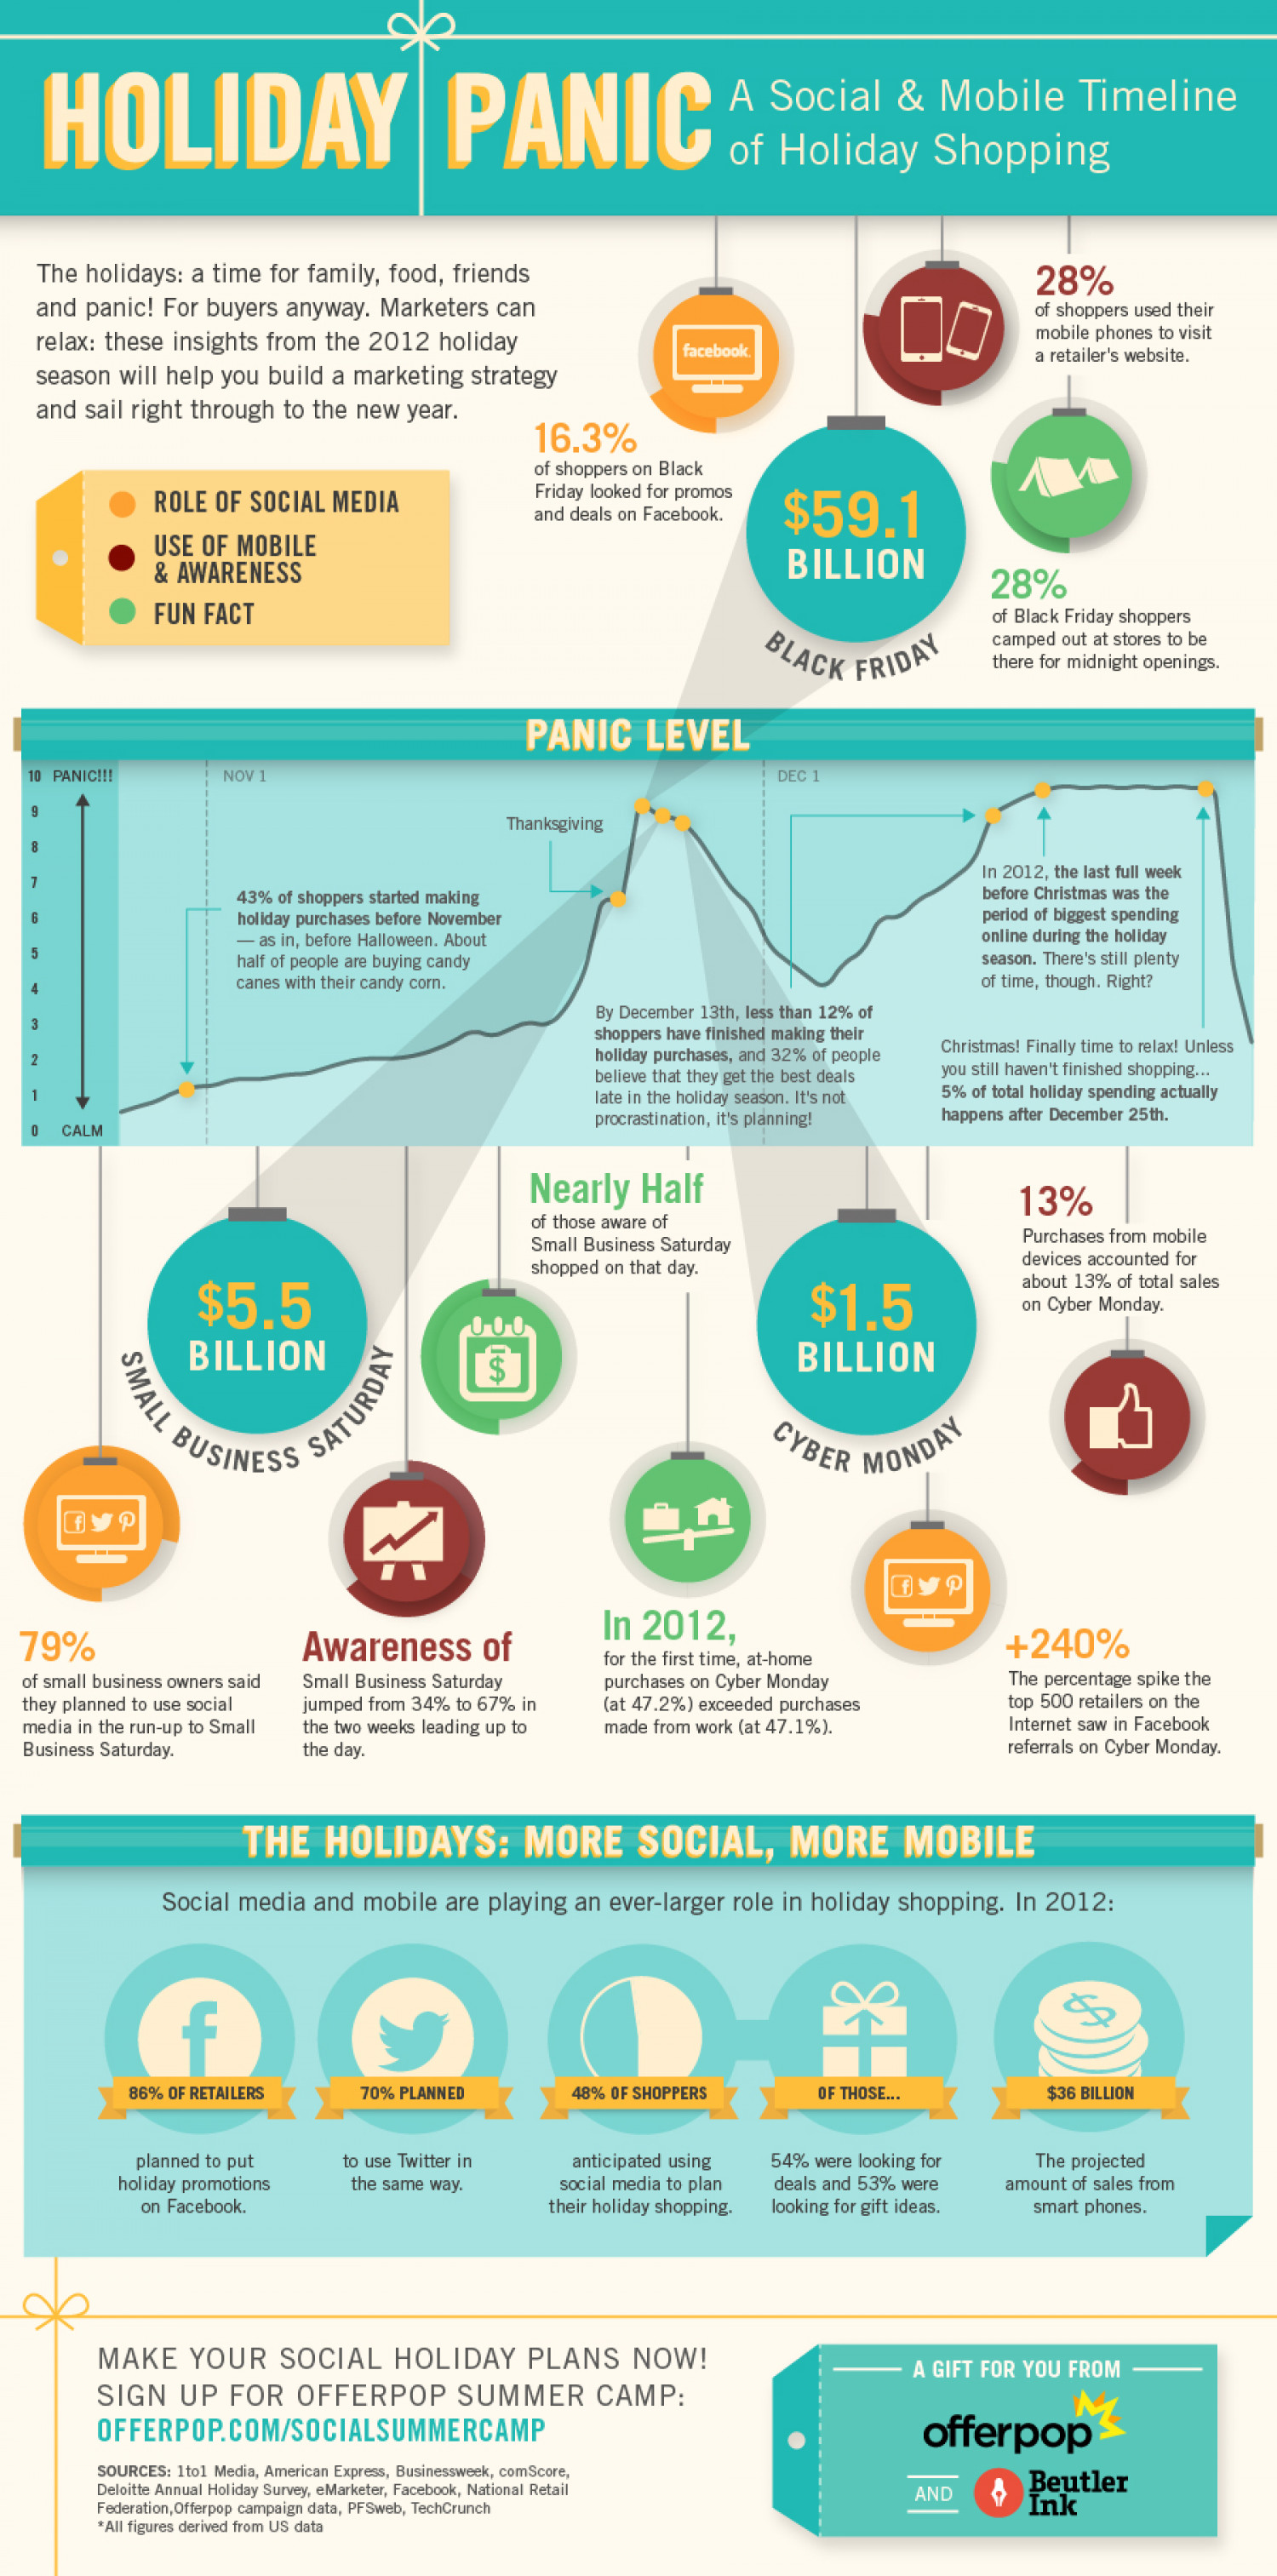 Holiday Panic: A Social & Mobile Timeline of Holiday Shopping Infographic